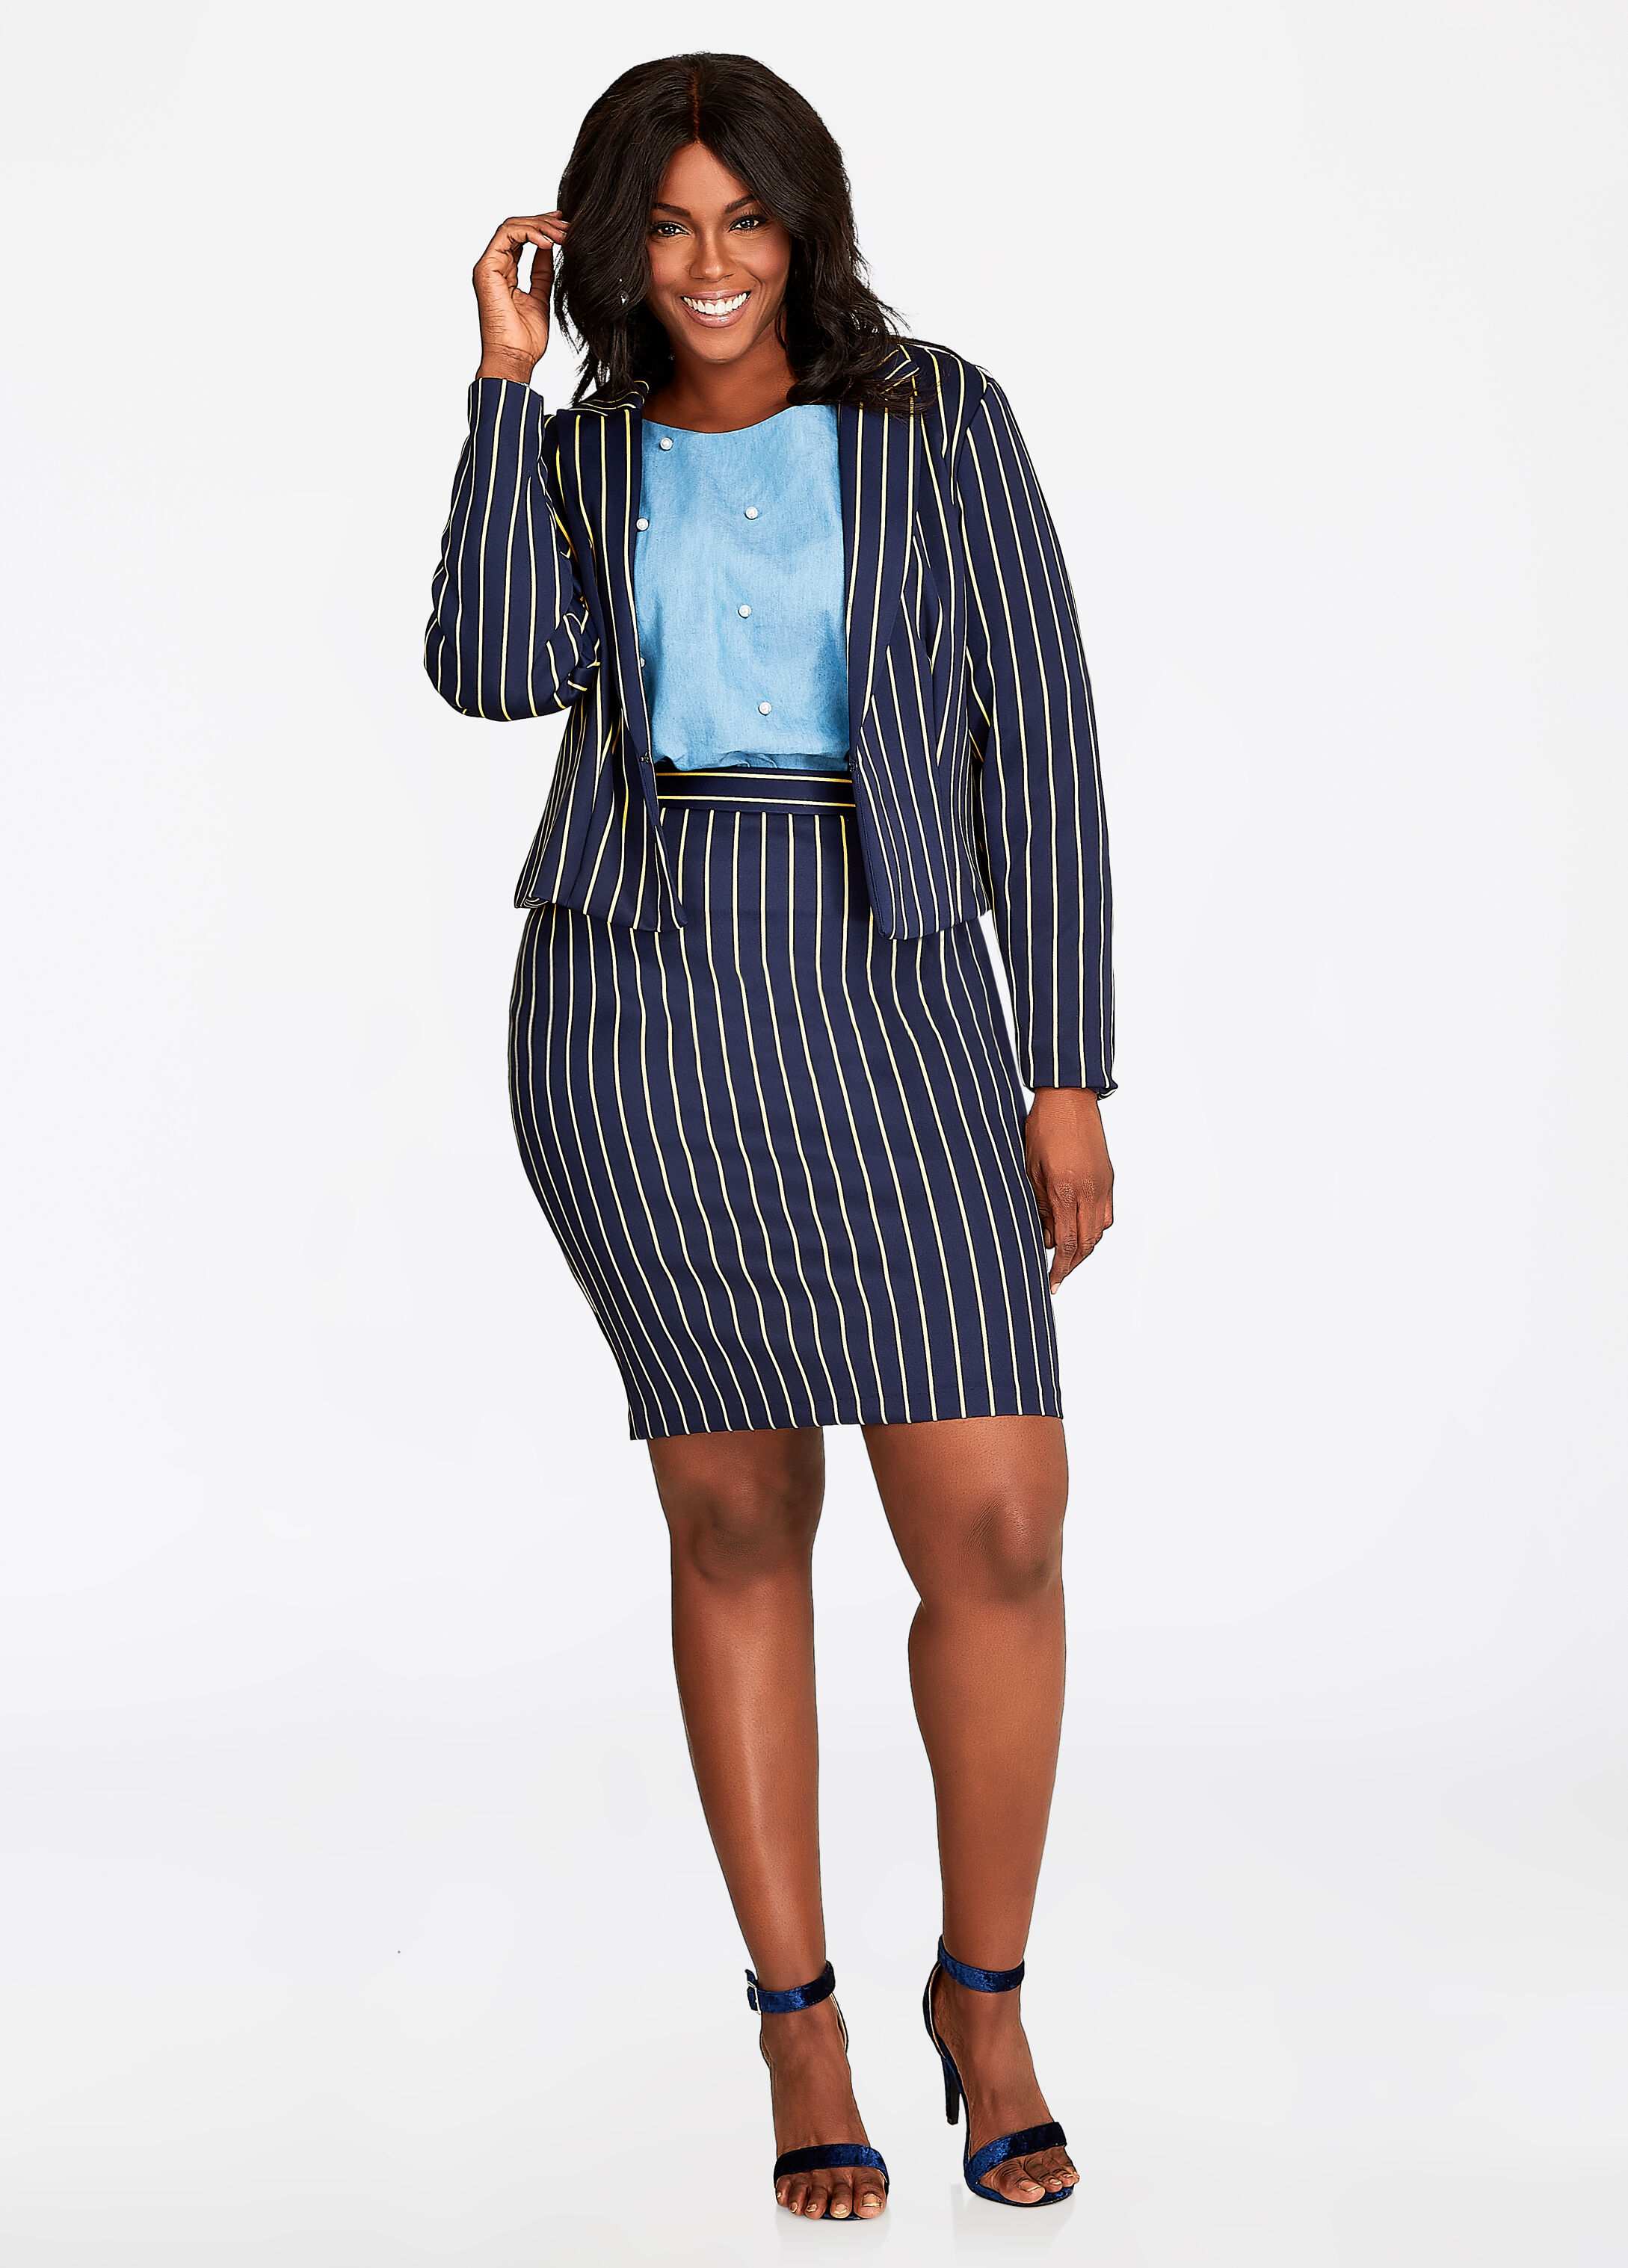 Plus Size Outfits - Pintstripe Crop Blazer and Pencil Skirt Set